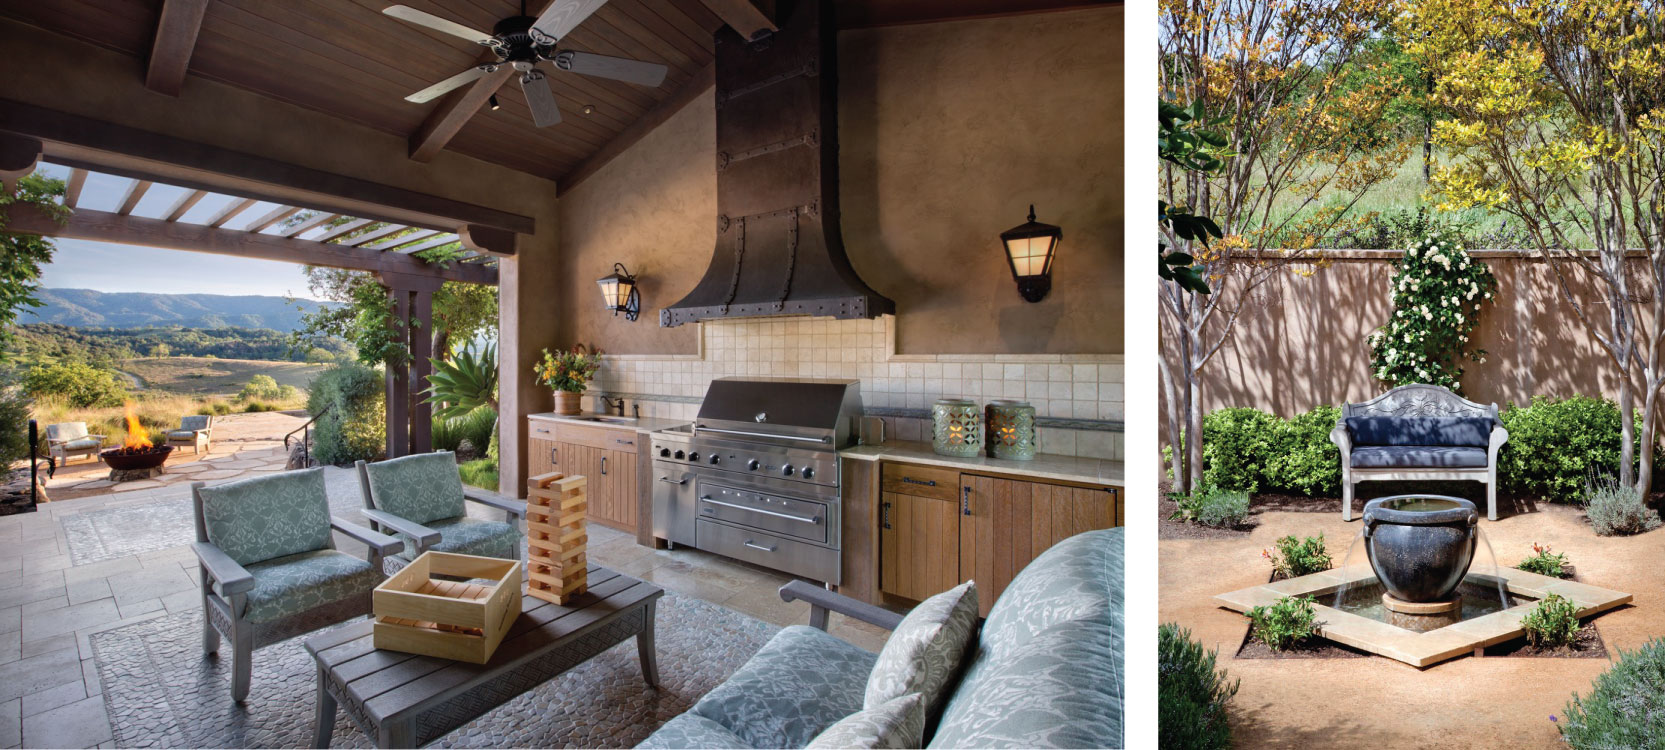 The indoor-outdoor kitchen opens up to the firepit area.